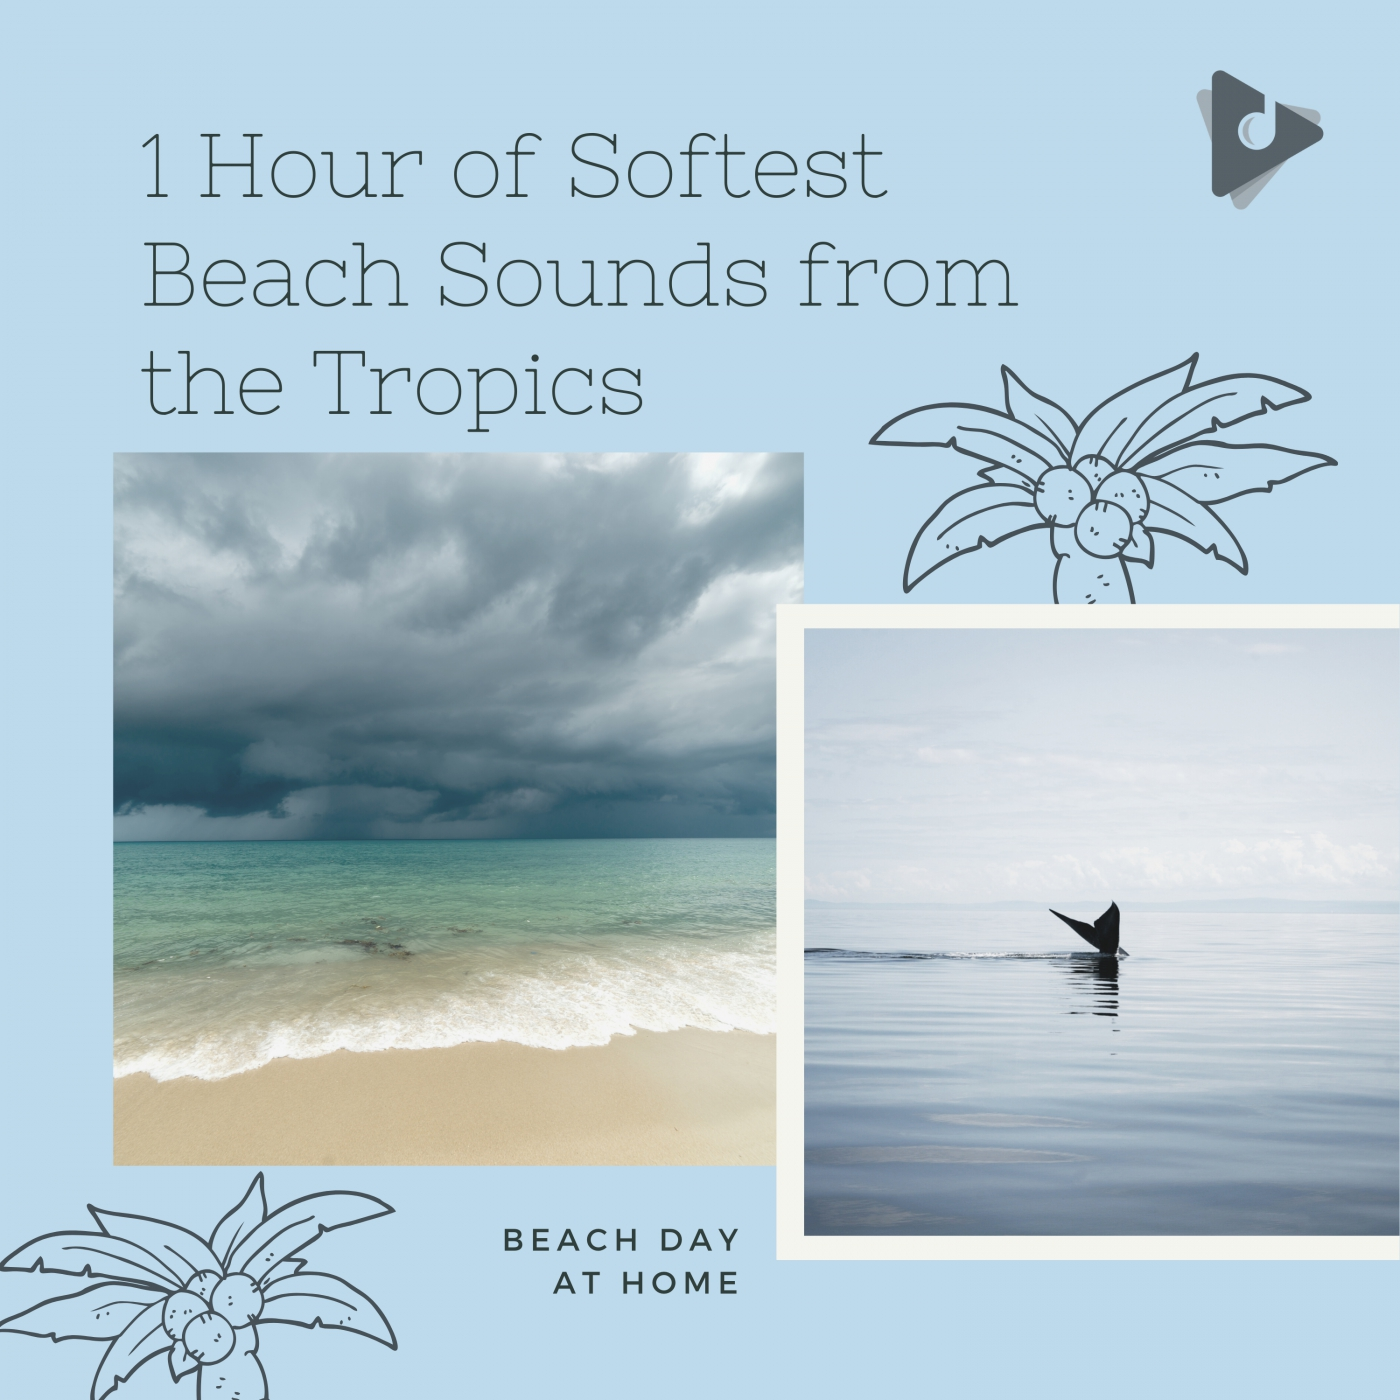 1 Hour of Softest Beach Sounds from the Tropics